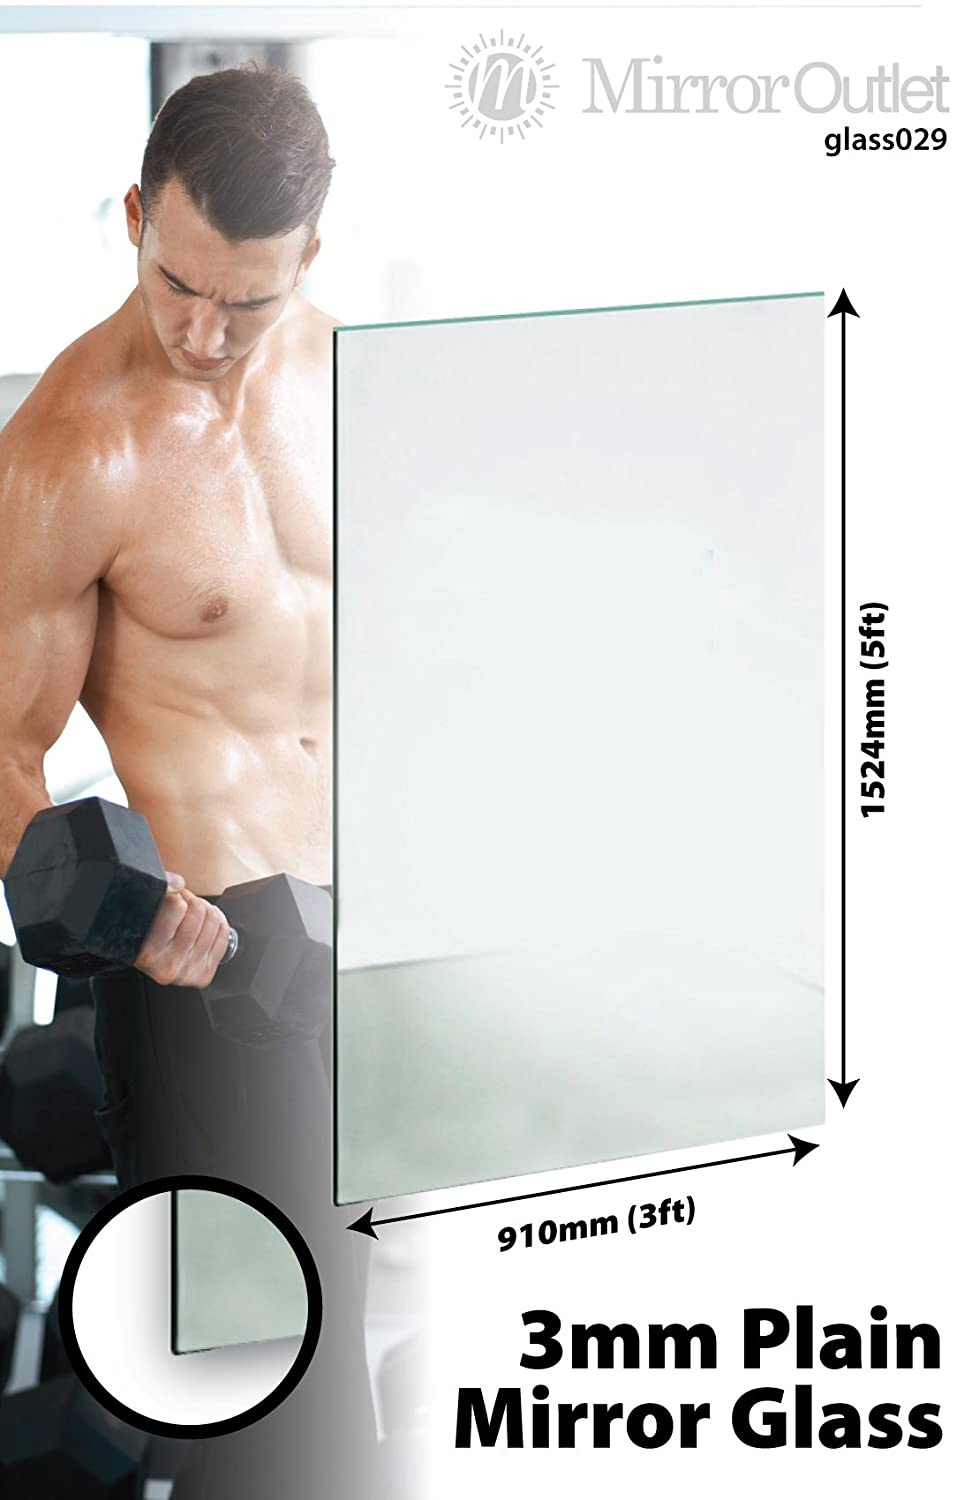 mirror 6ft x 4ft. large new mirror glass sheet 3mm thick 5ft x 3ft 152cm 91cm solid glass: amazon.co.uk: kitchen \u0026 home 6ft 4ft s